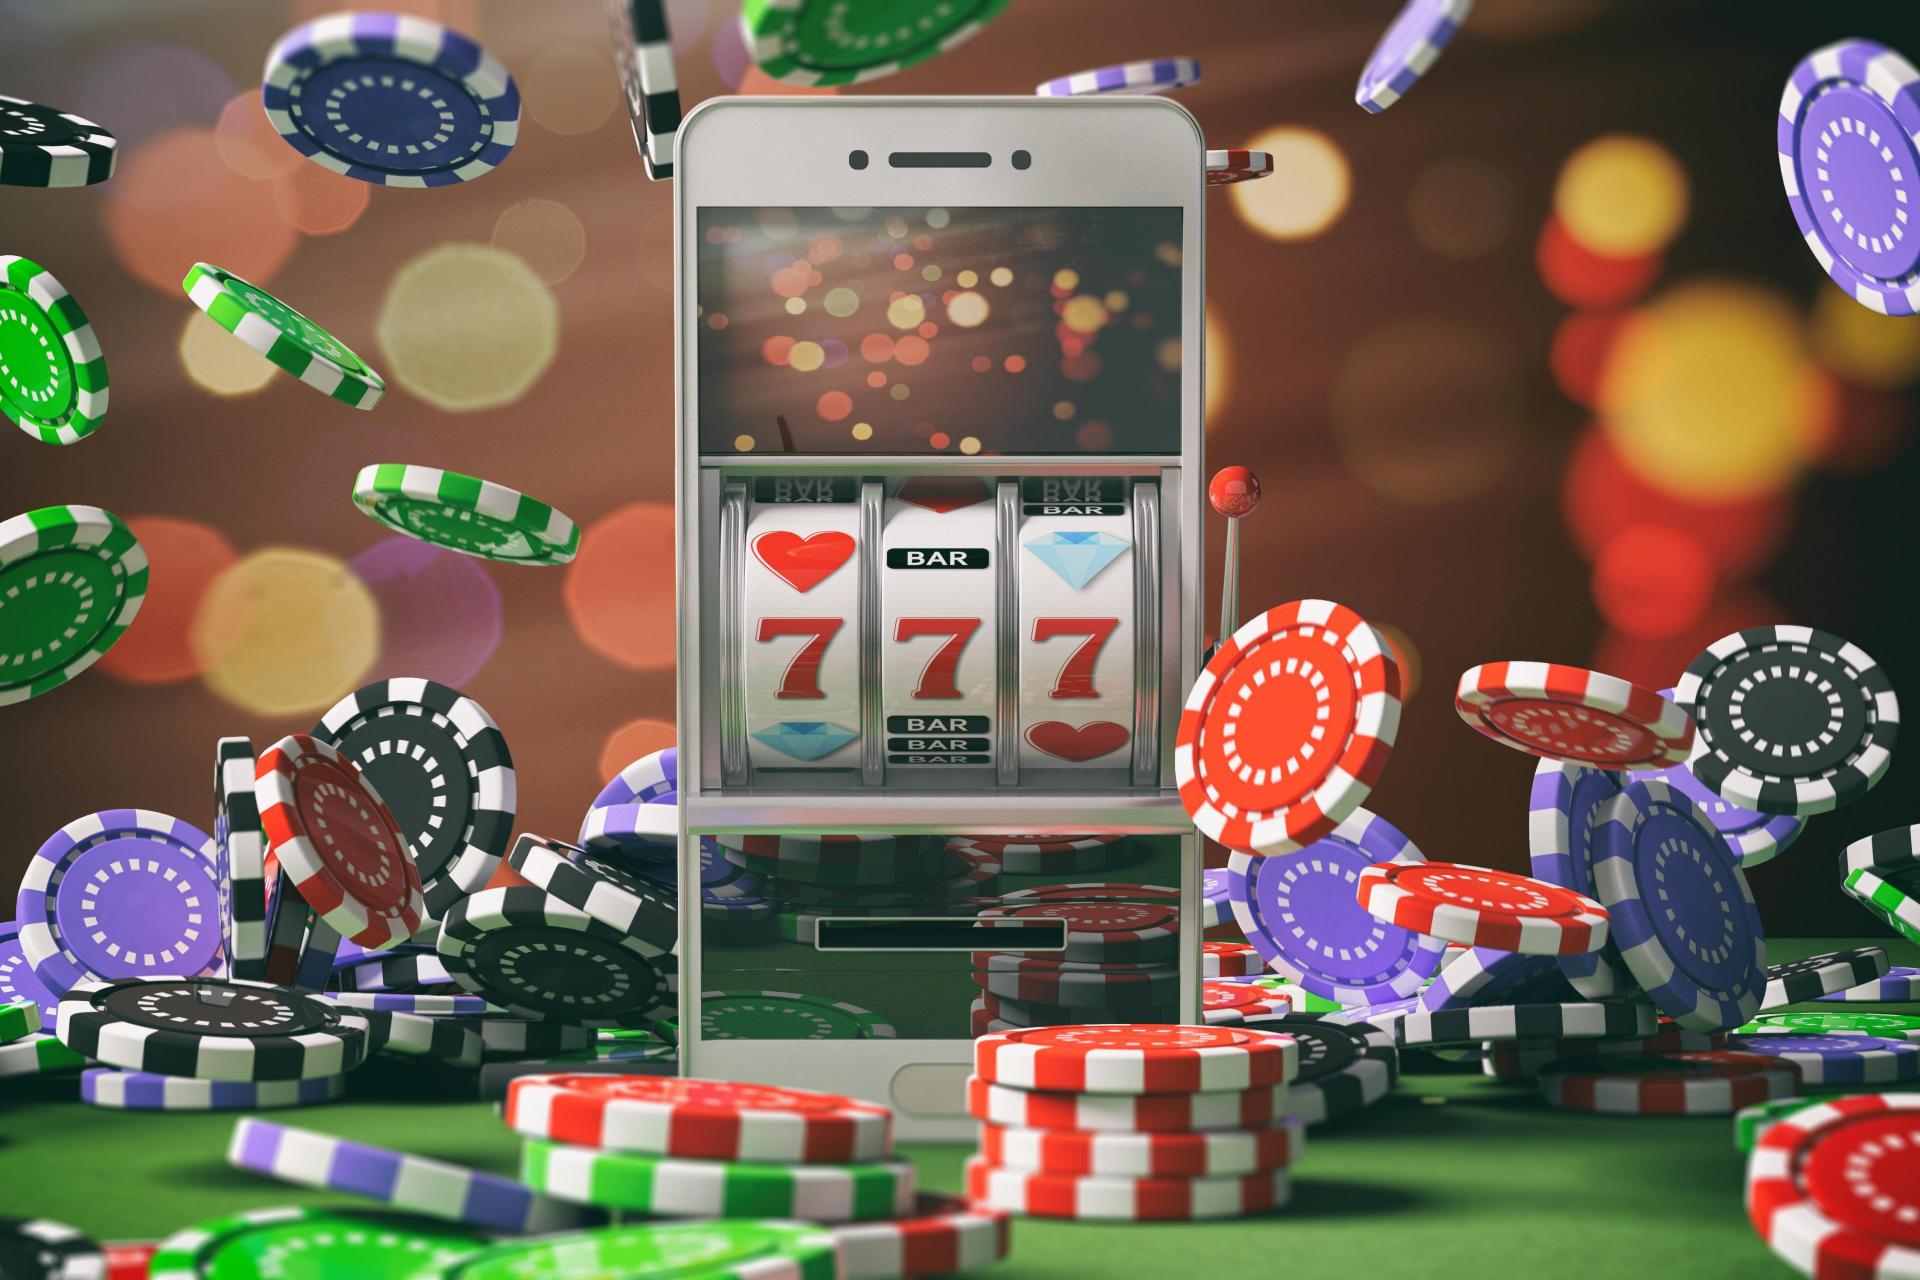 5 Tips For Finding a Safe Online Casino to Play - 2021 Guide - WebSta.ME